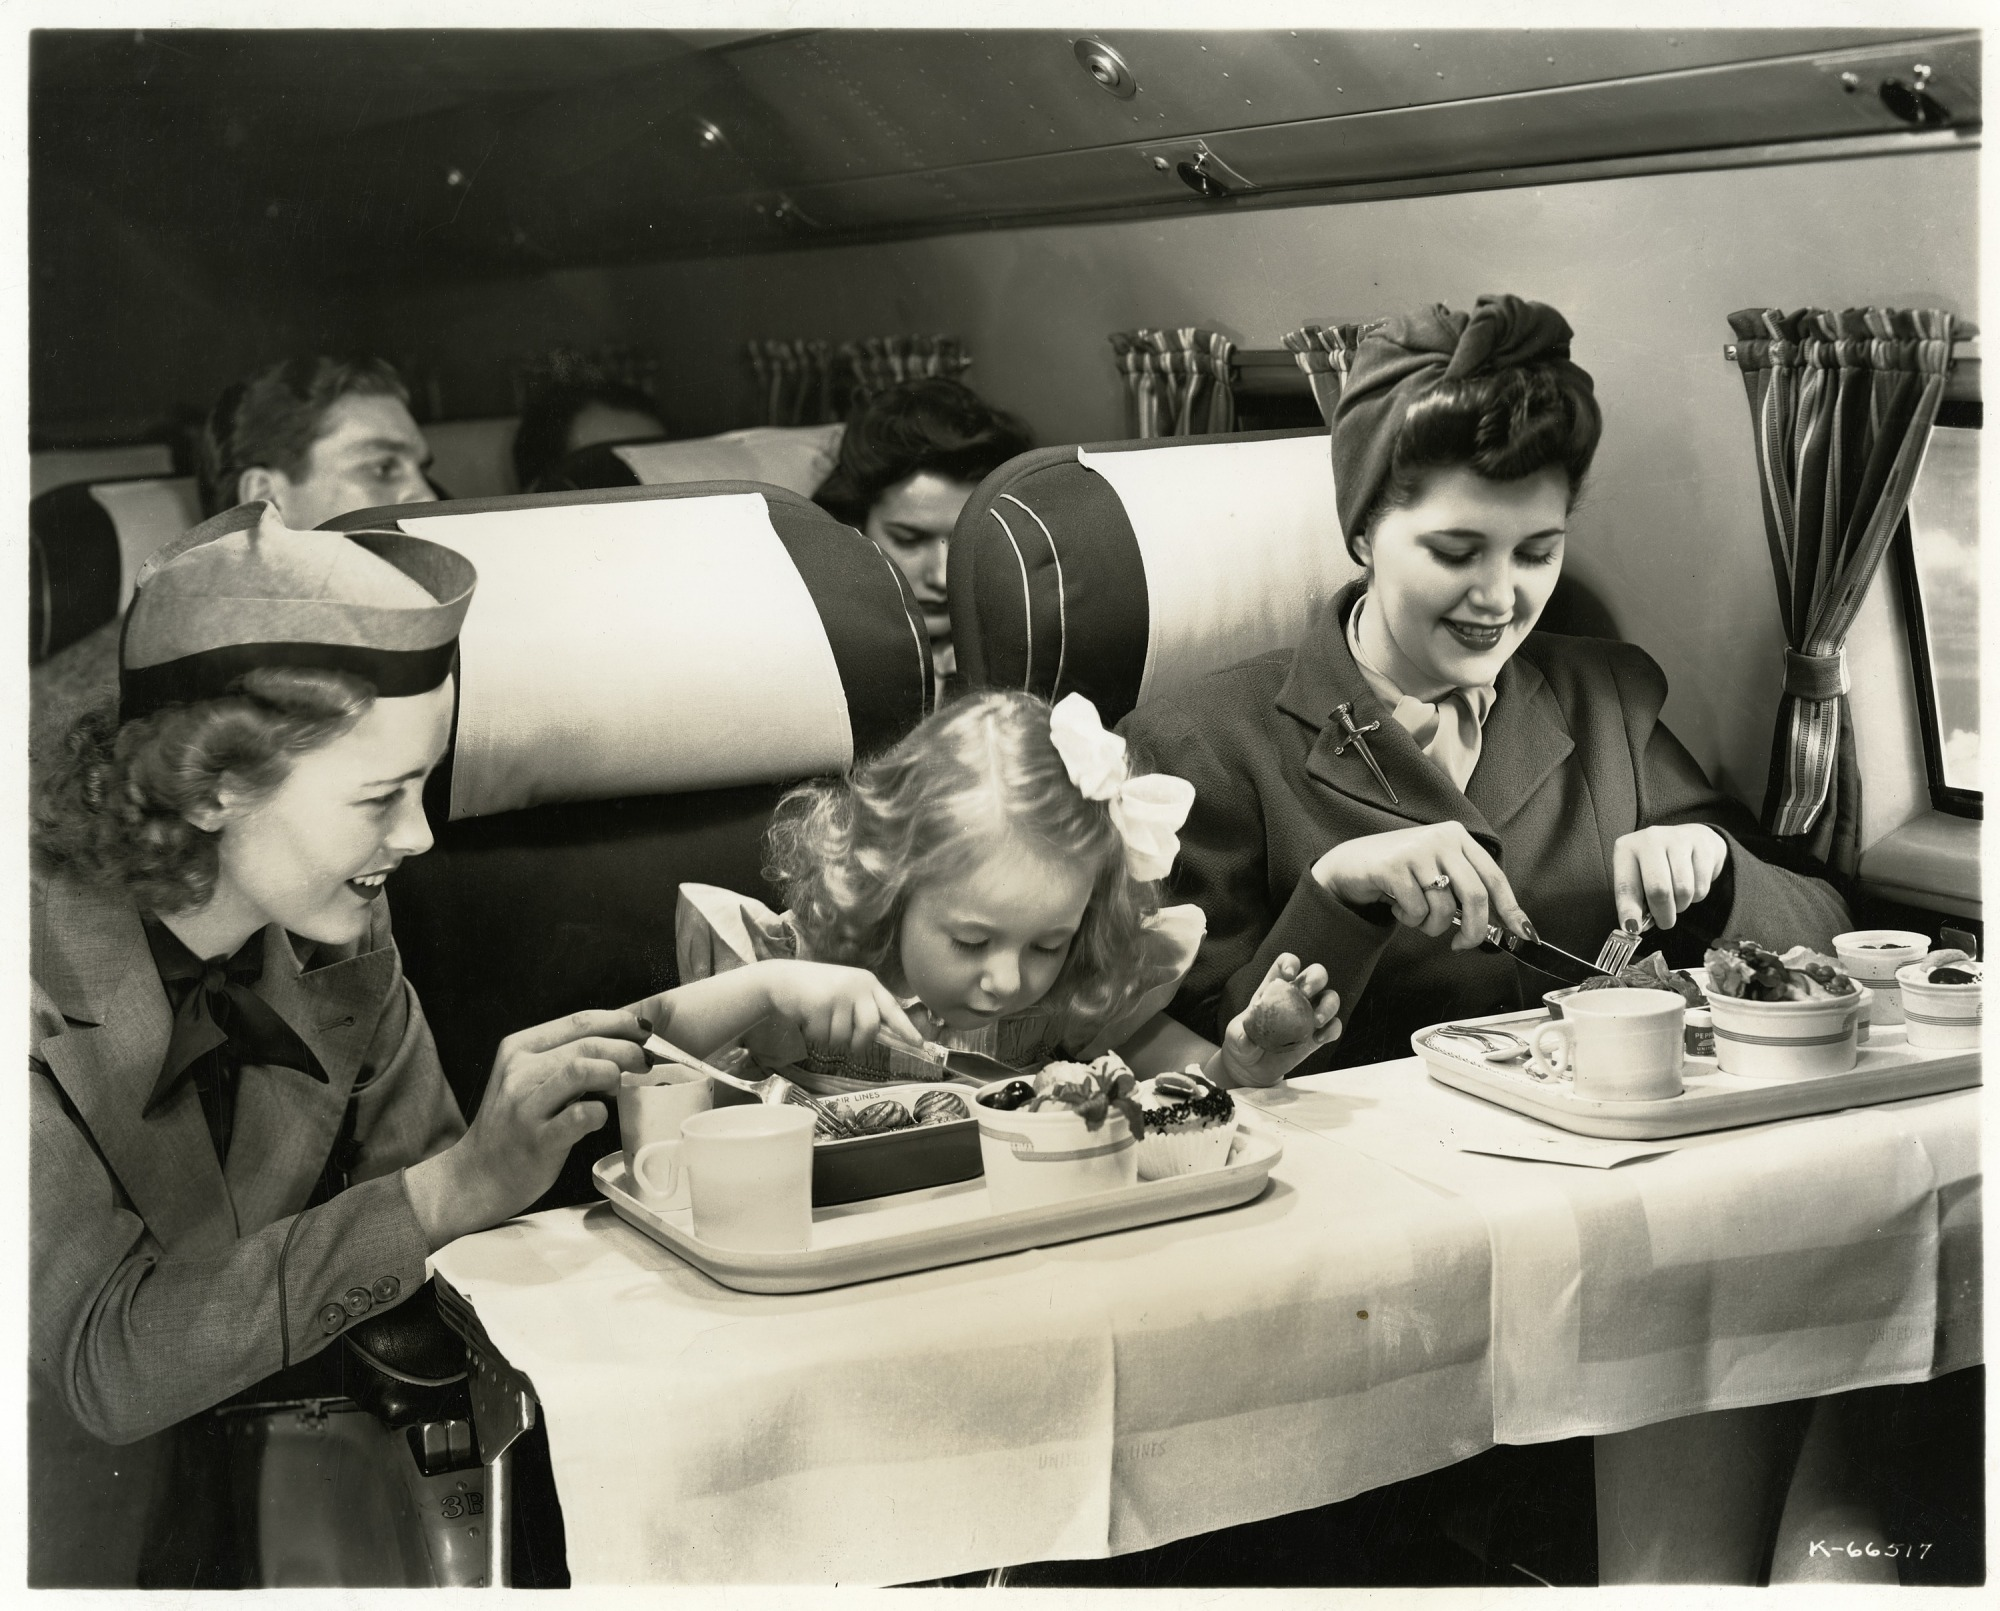 images for Douglas DC-3 (Interior); United Air Lines, Crews, Cabin (Stewardess), Food Service. photograph